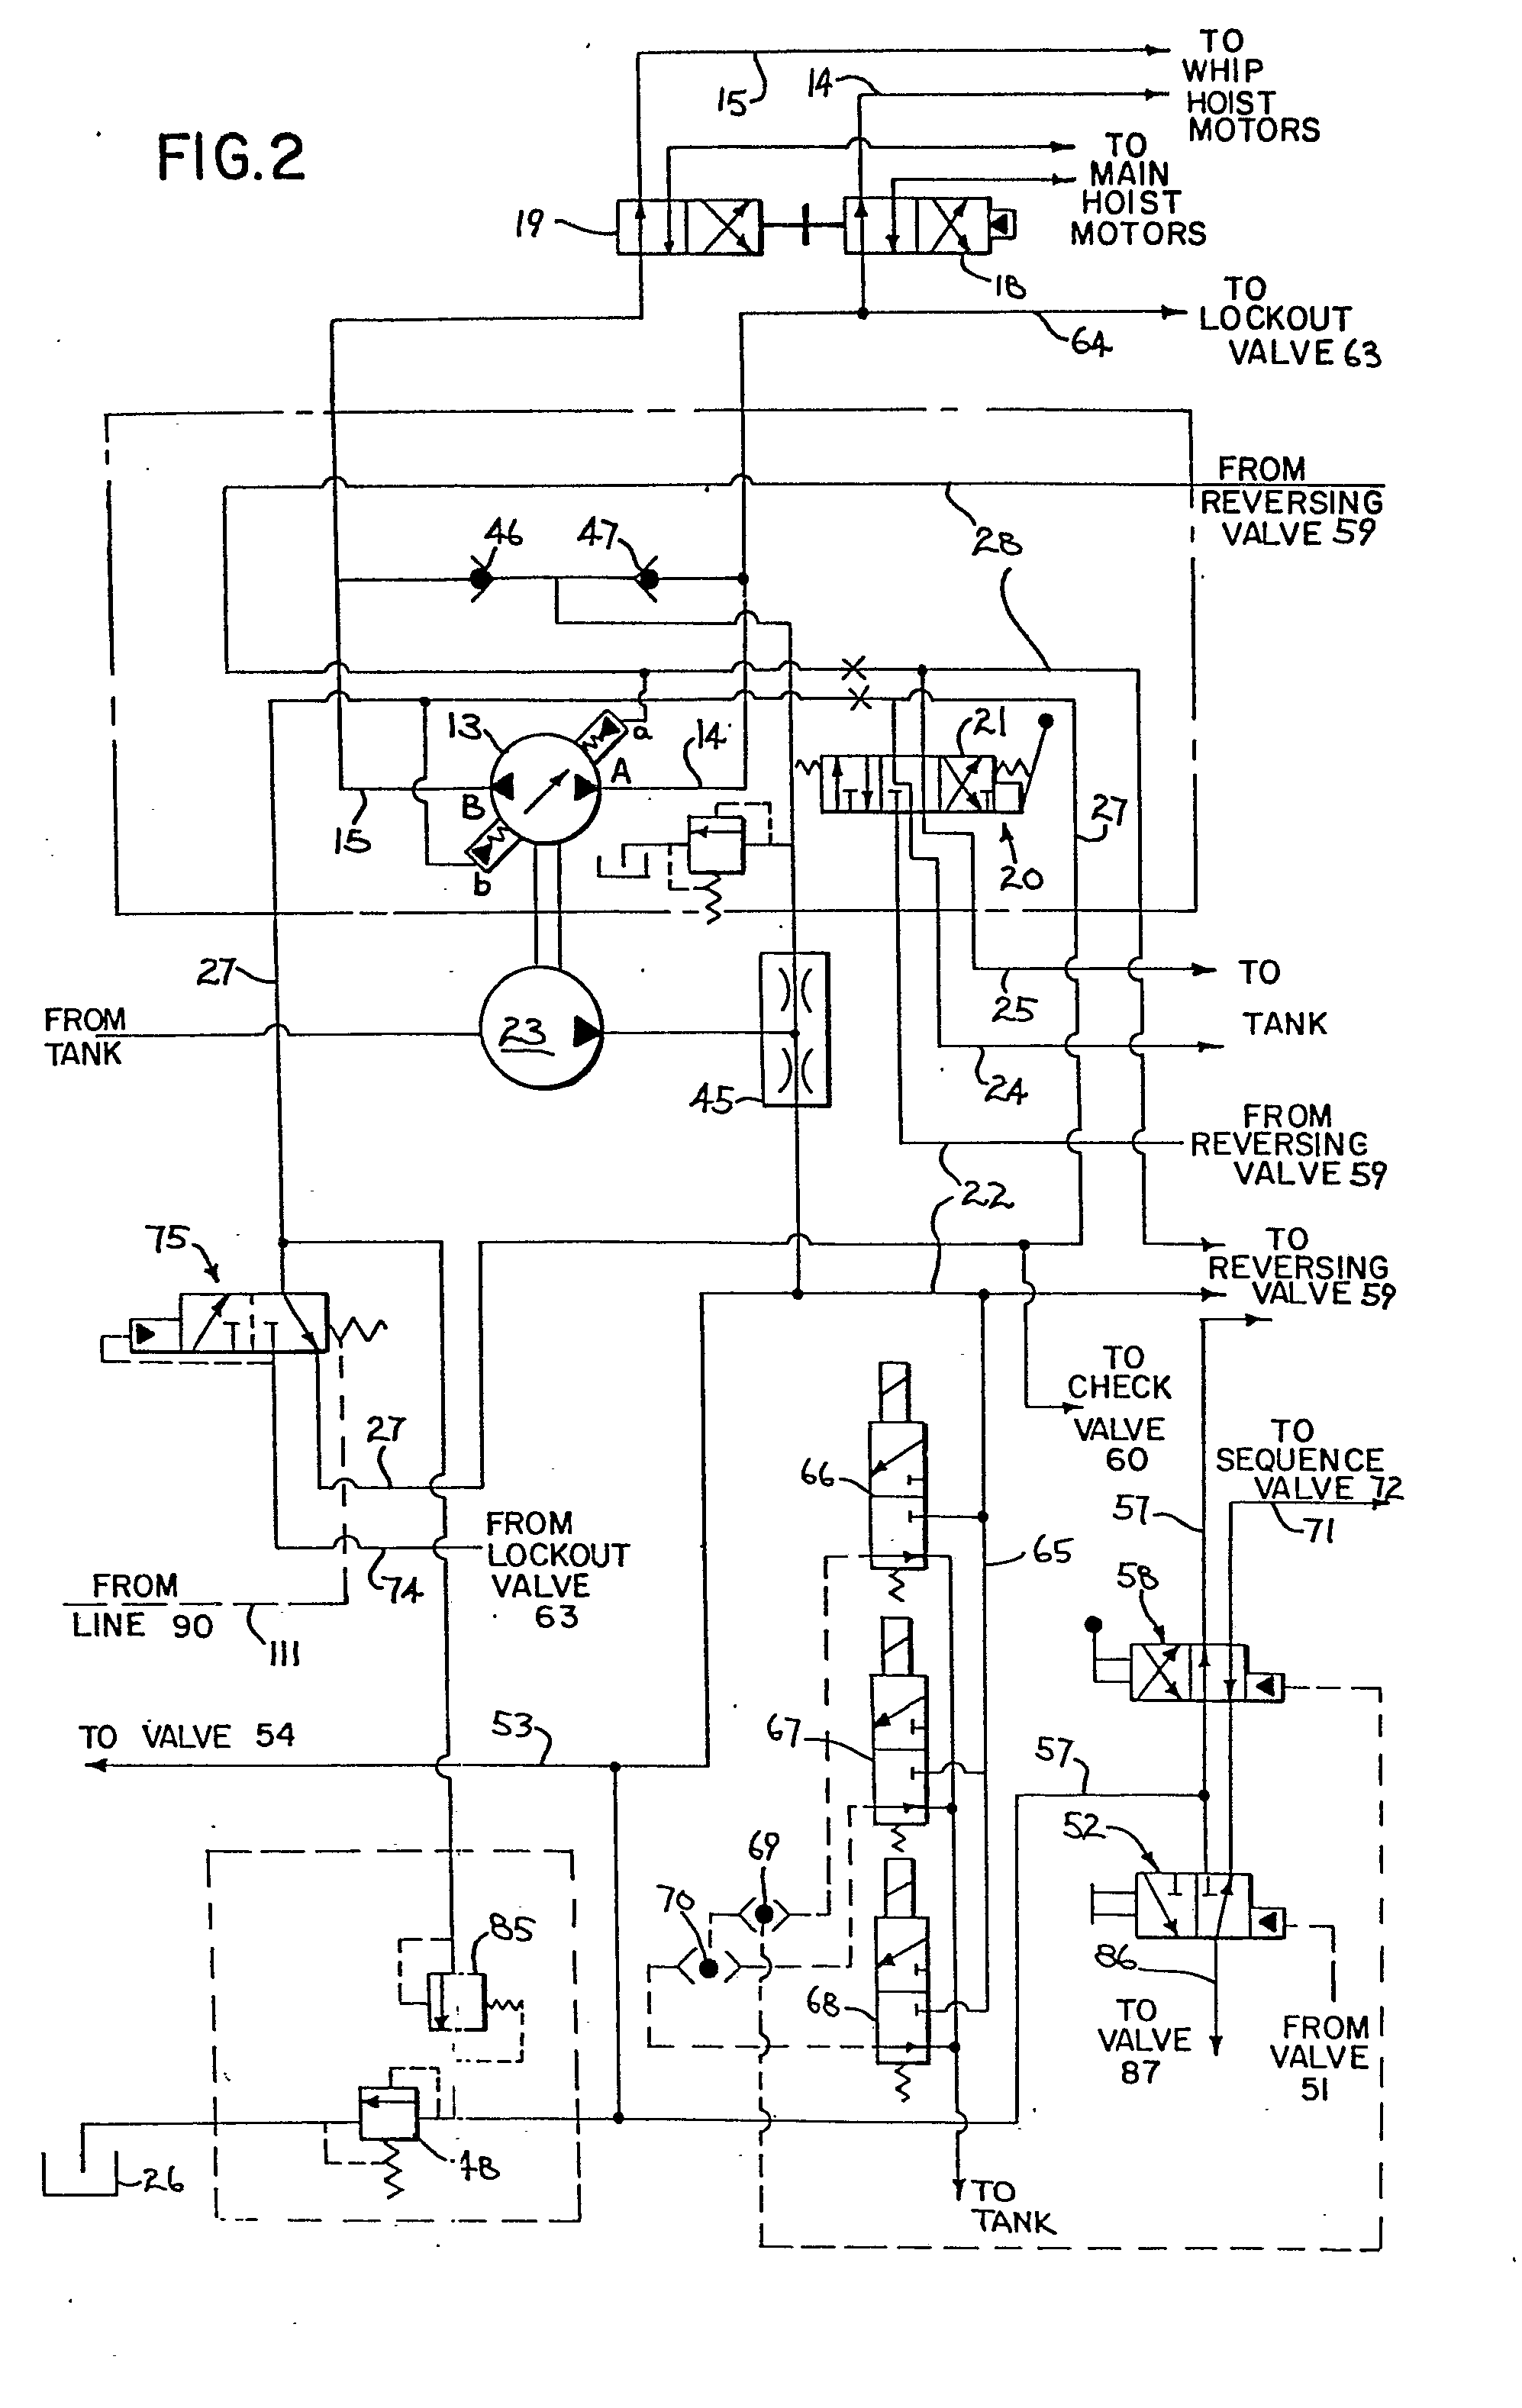 Solenoid Operated Directional Control Valve Schematic